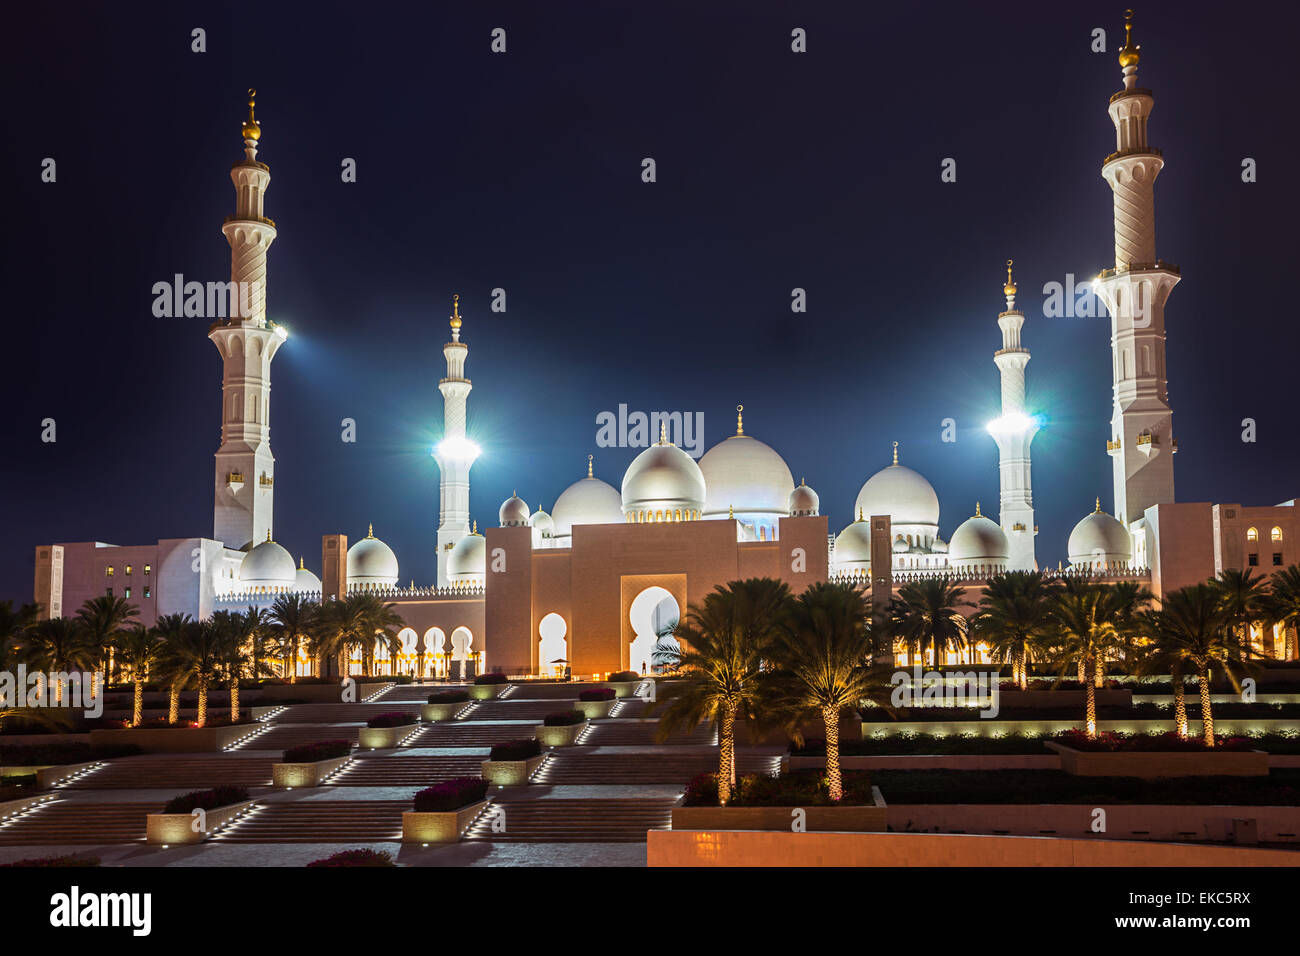 Sheikh Zayed Grand Mosque - Stock Image